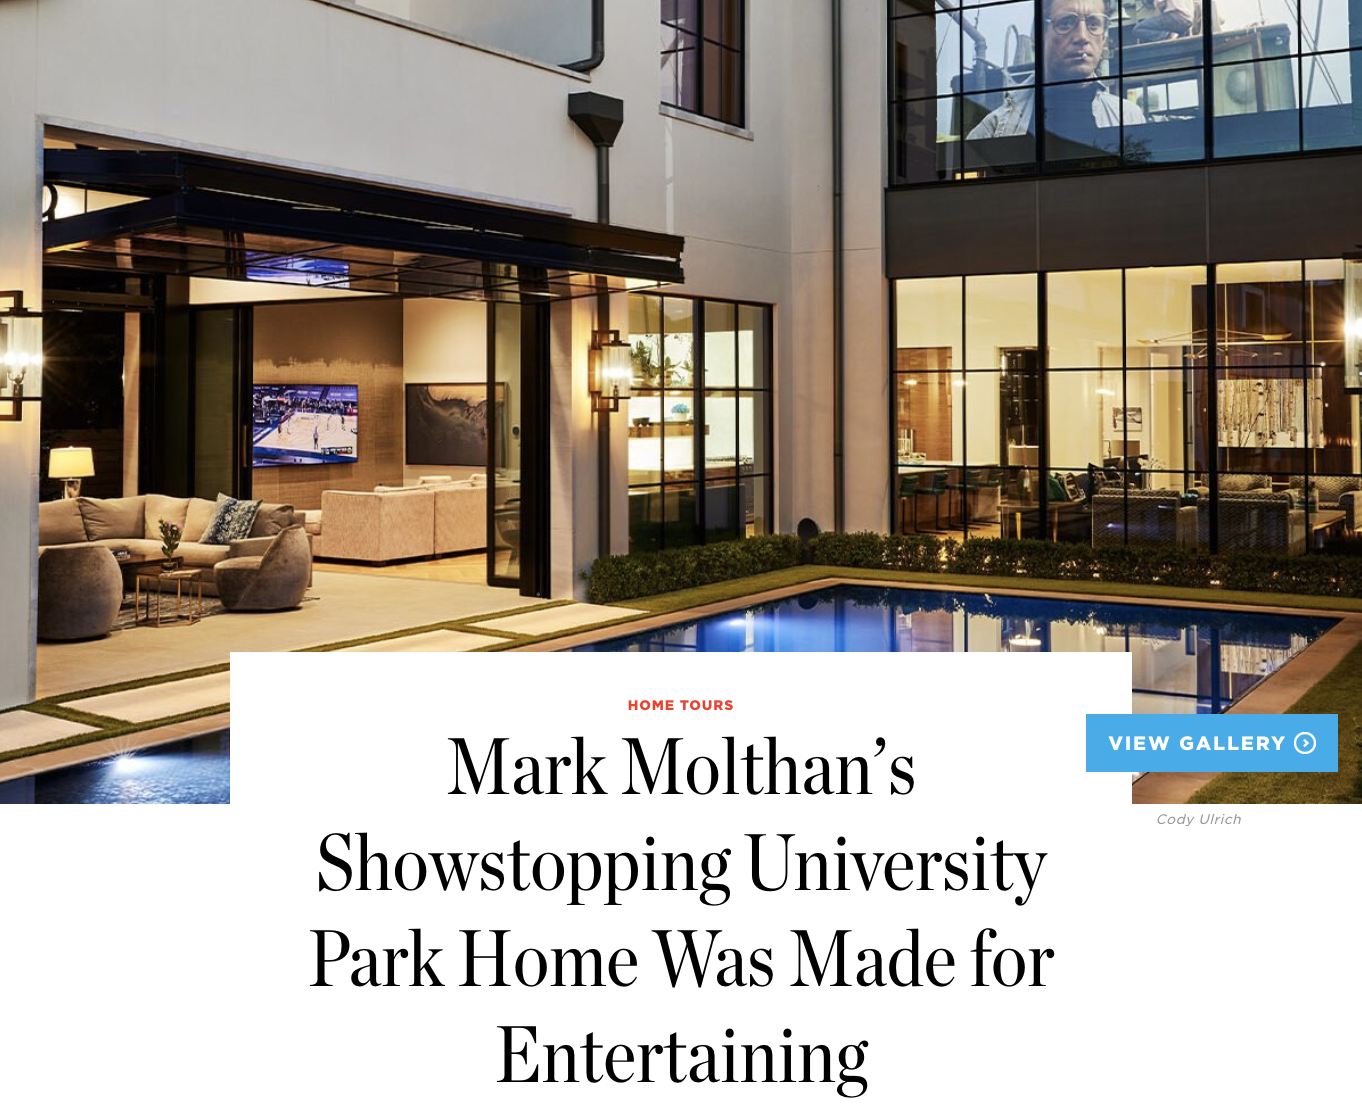 DALLAS MODERN LUXURY - Platinum Series Homes by Mark Molthan